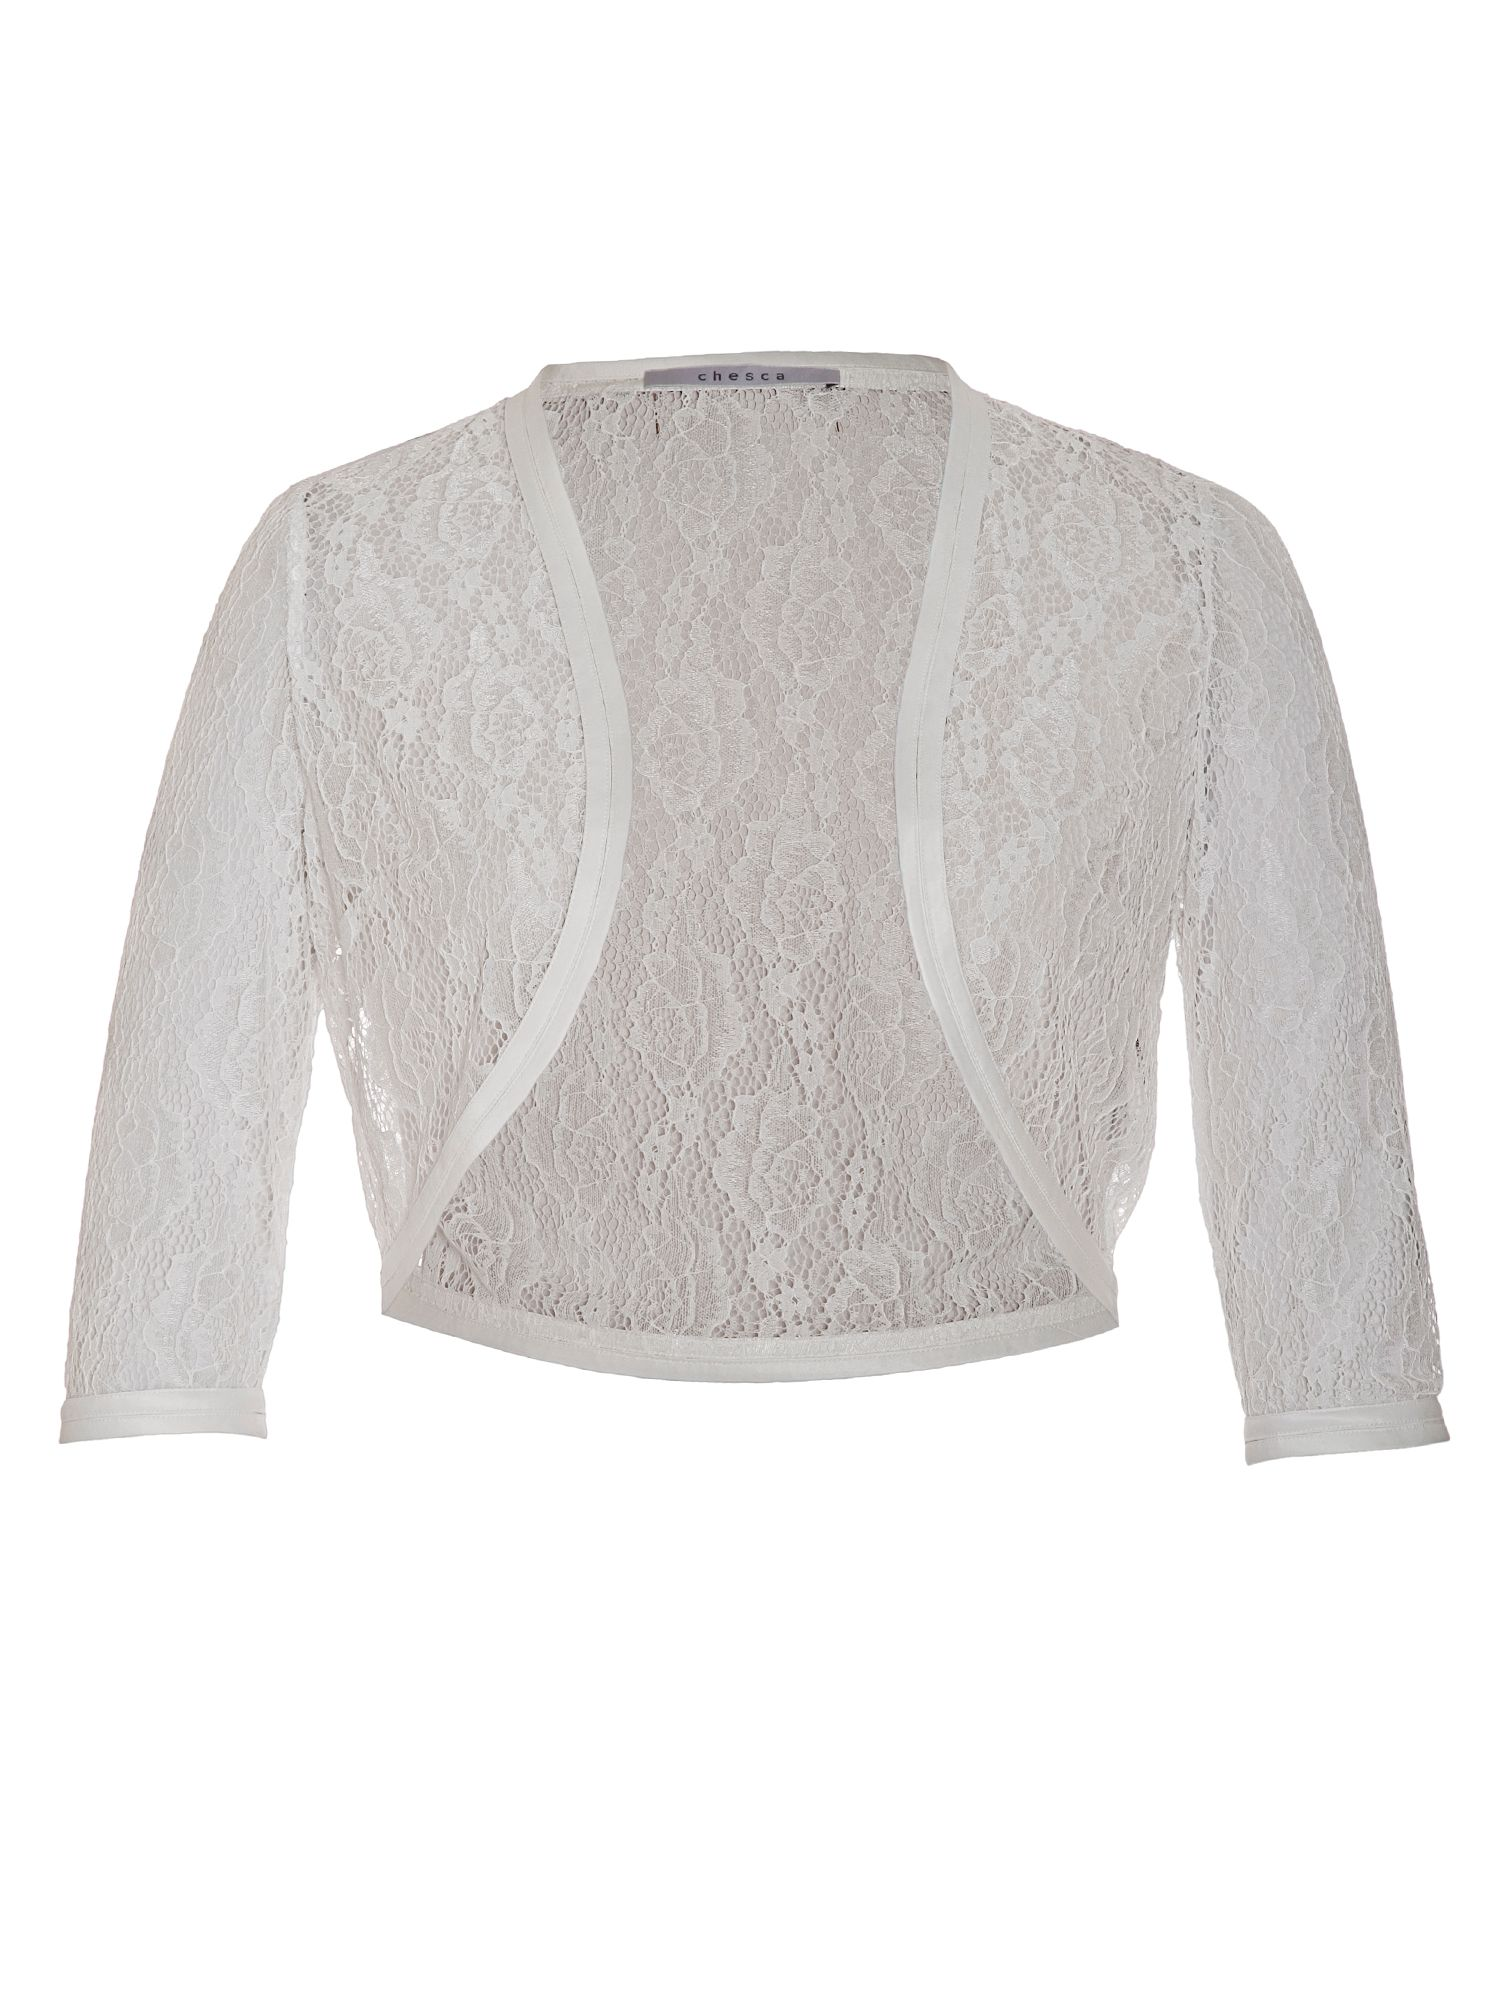 Chesca Lace Bridal Bolero, White